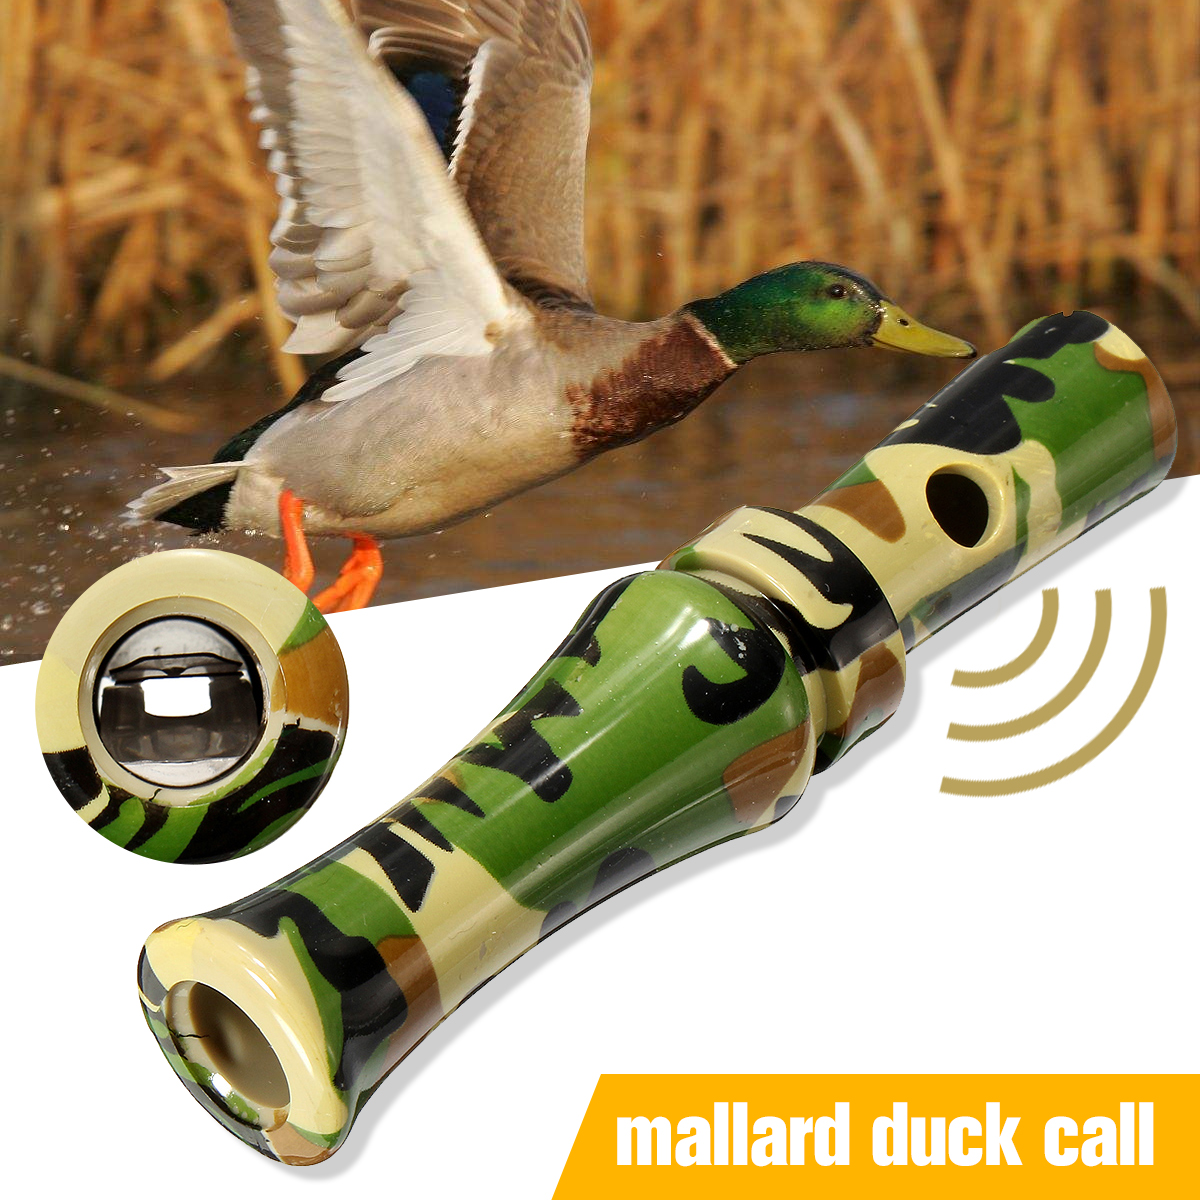 SGODDE Plastic Camouflage Duck Pheasant Mallard Hunting Call Caller Hunting Decoys Entice Wild Duck Closer for a Better Shot